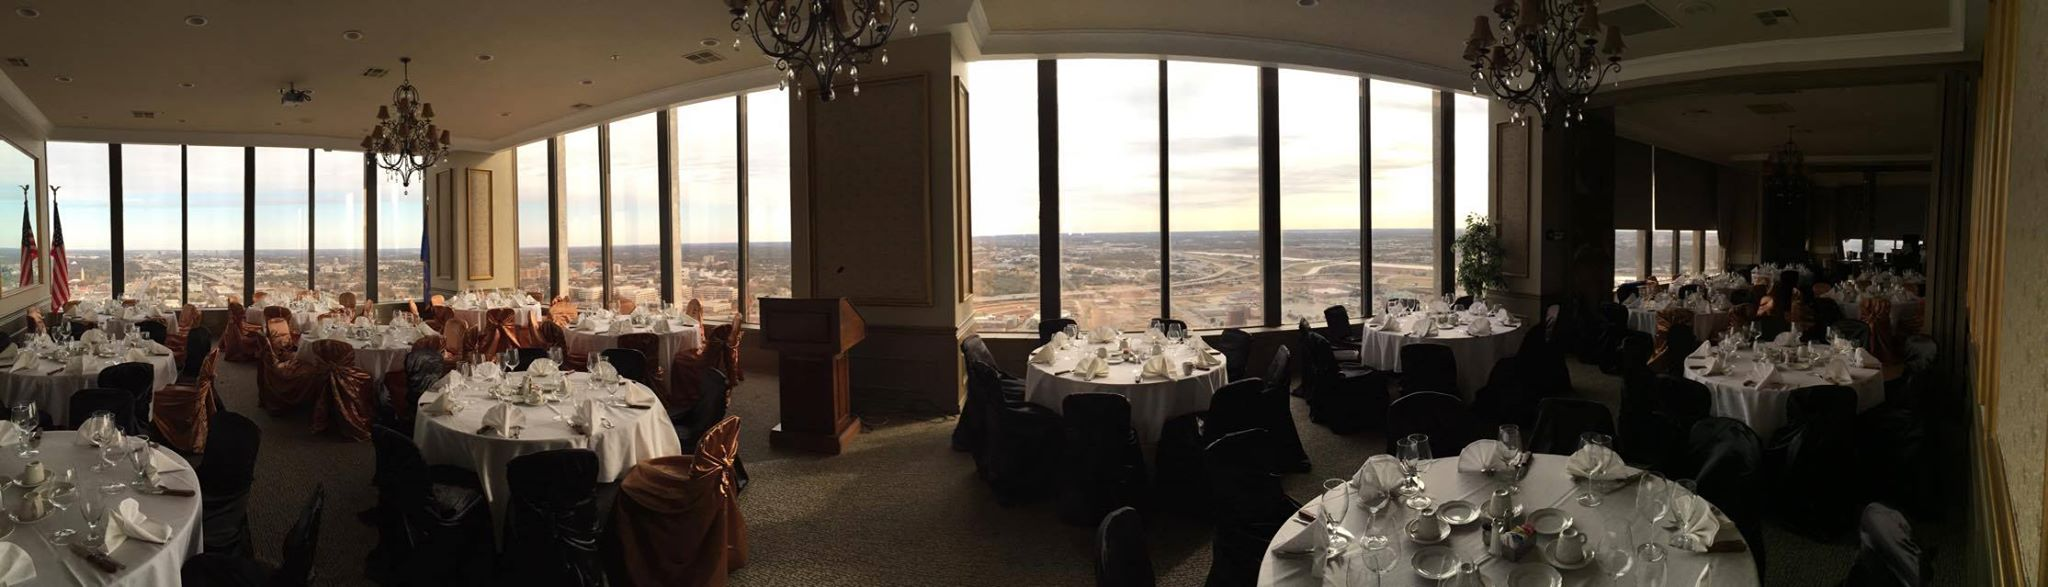 Restaurant Wants to Block Heat without sacrificing their view